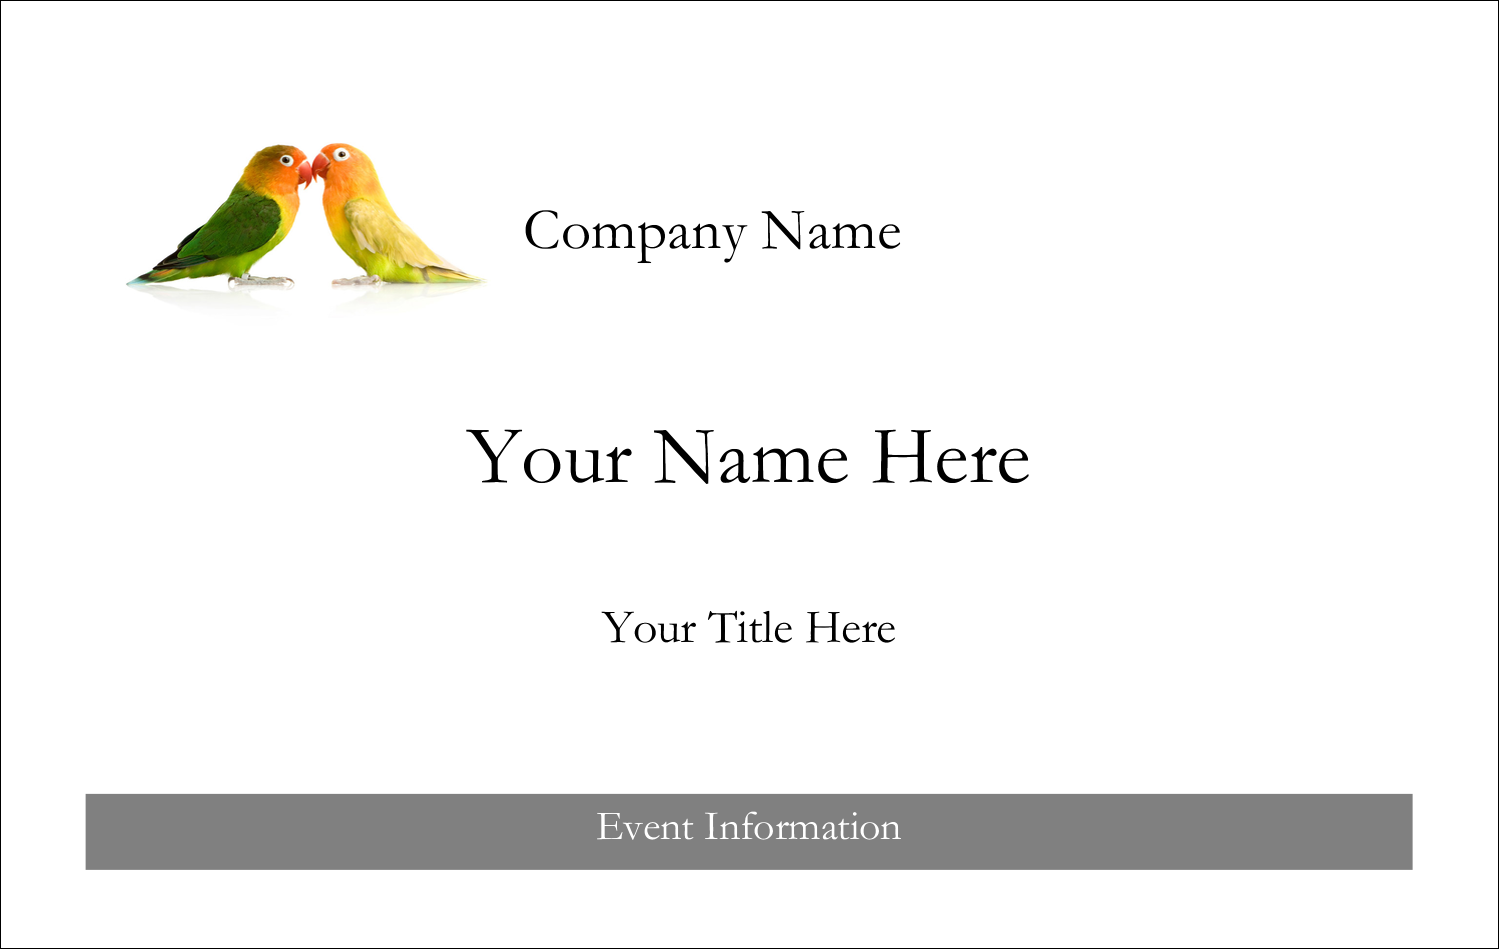 2¼ x 3½ Name Tags - Birds in Nature